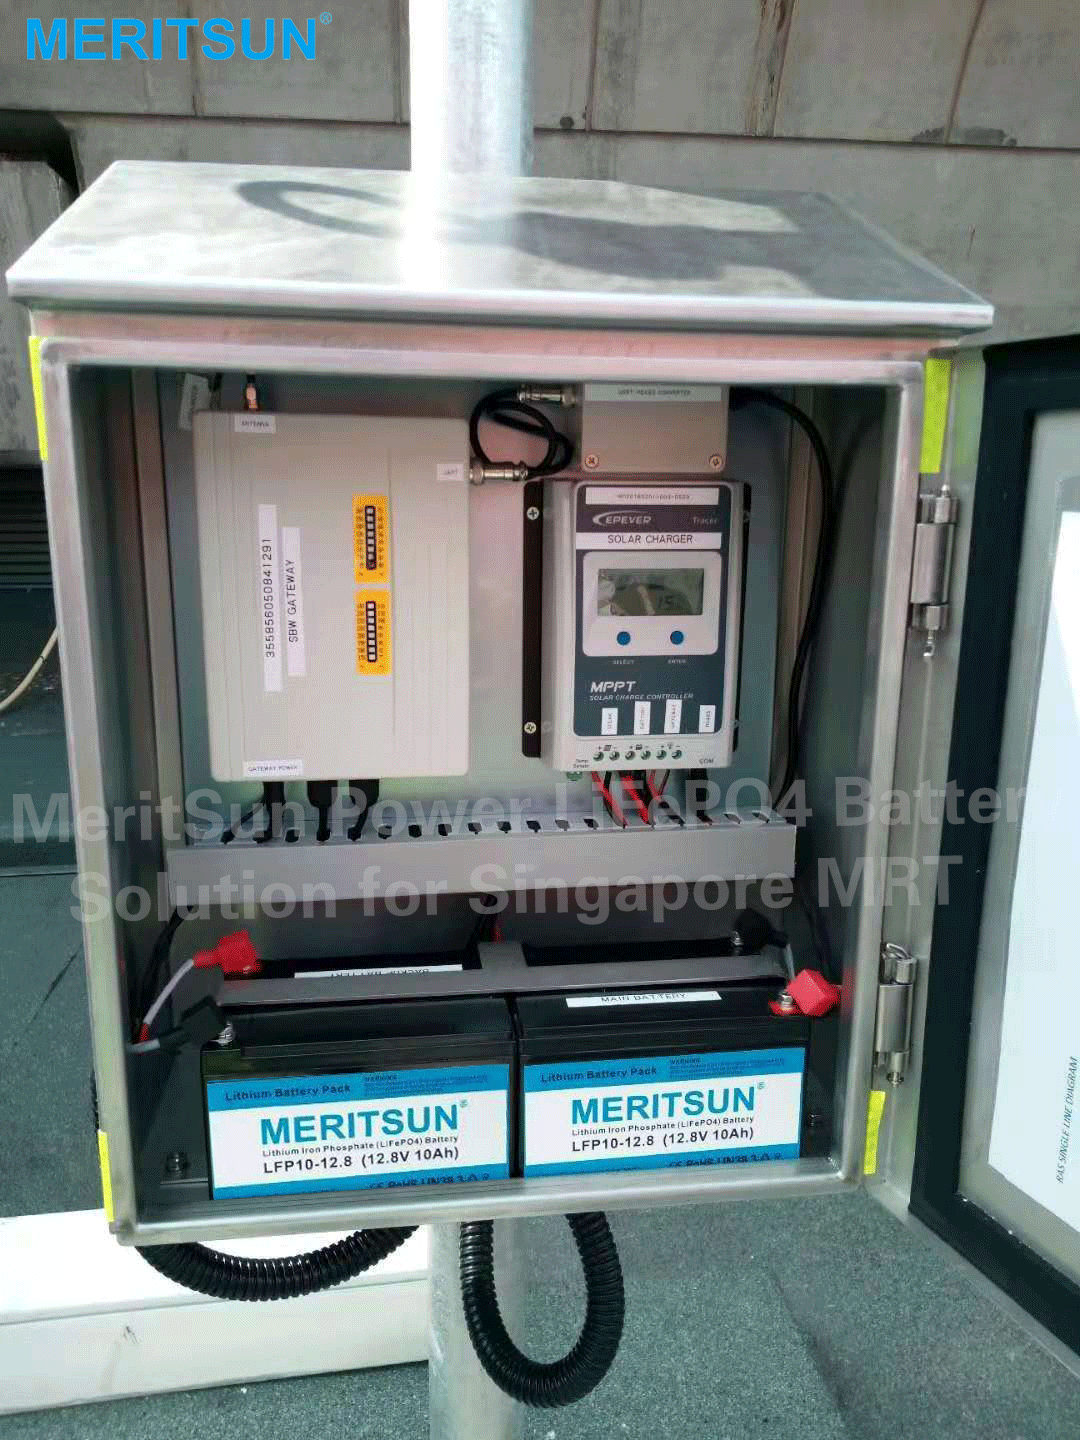 solar monitoring stations in Singapore MRT stations battery